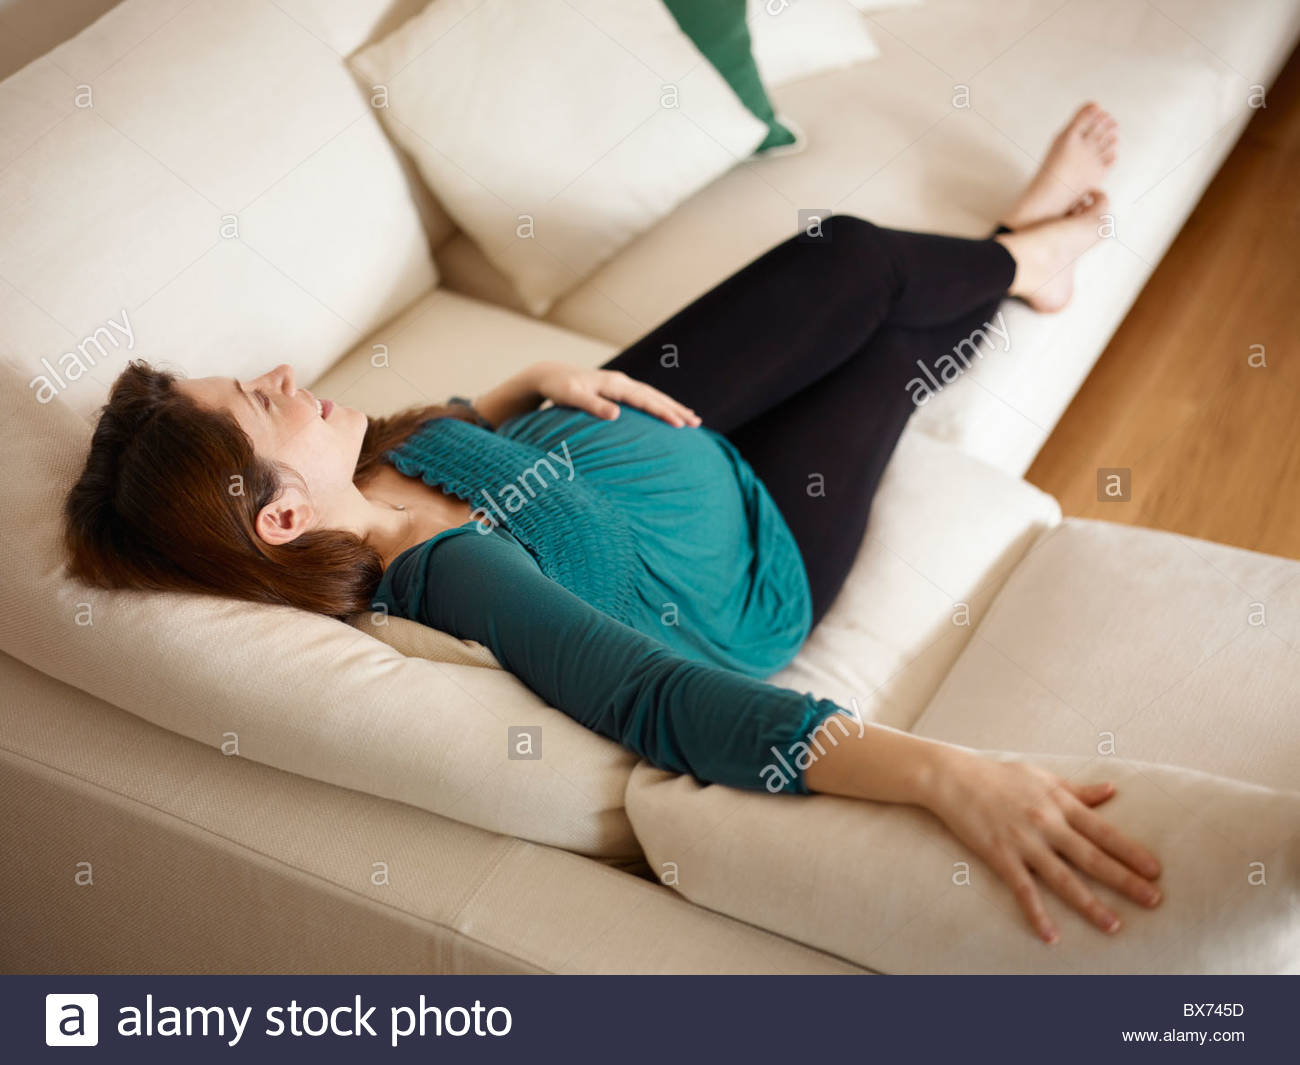 Pregnant woman - Stock Image